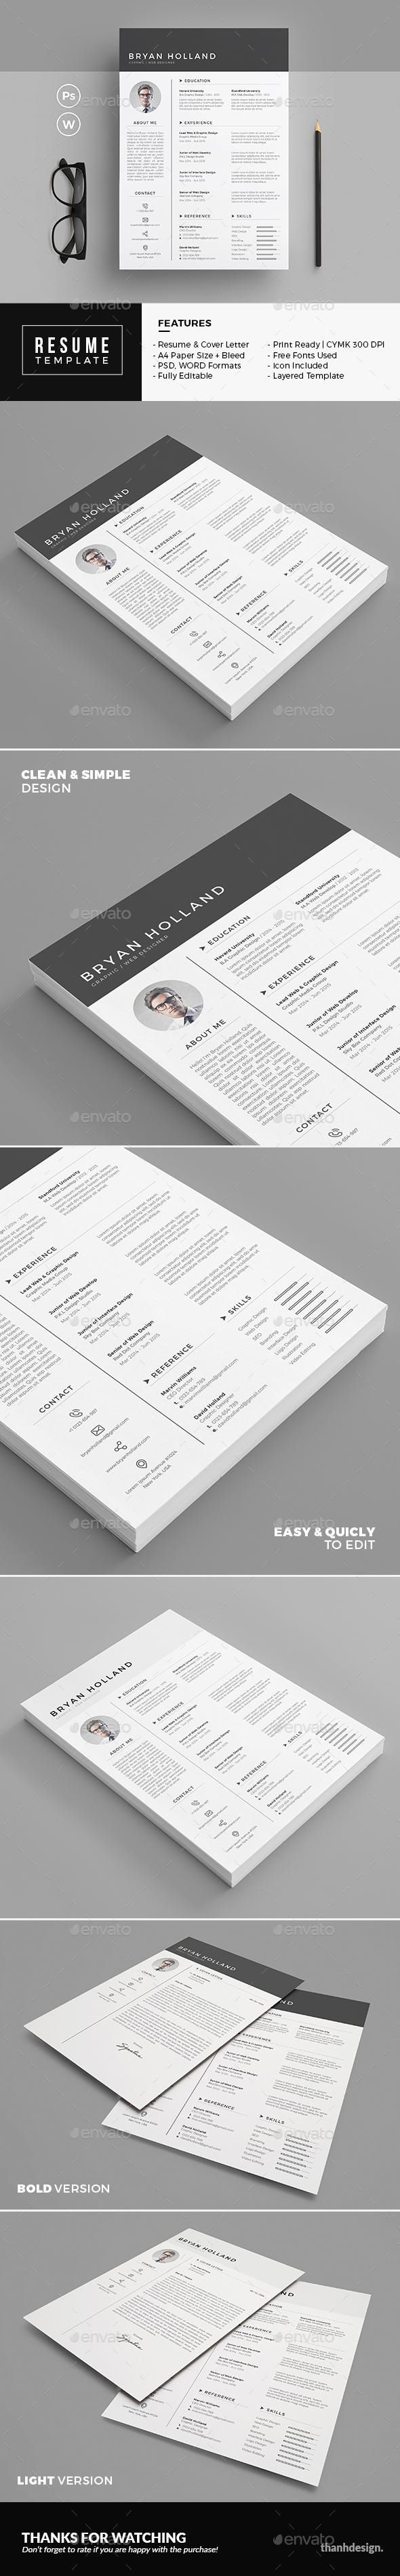 Resume for 7 GraphicRiver BestDesignResources 48